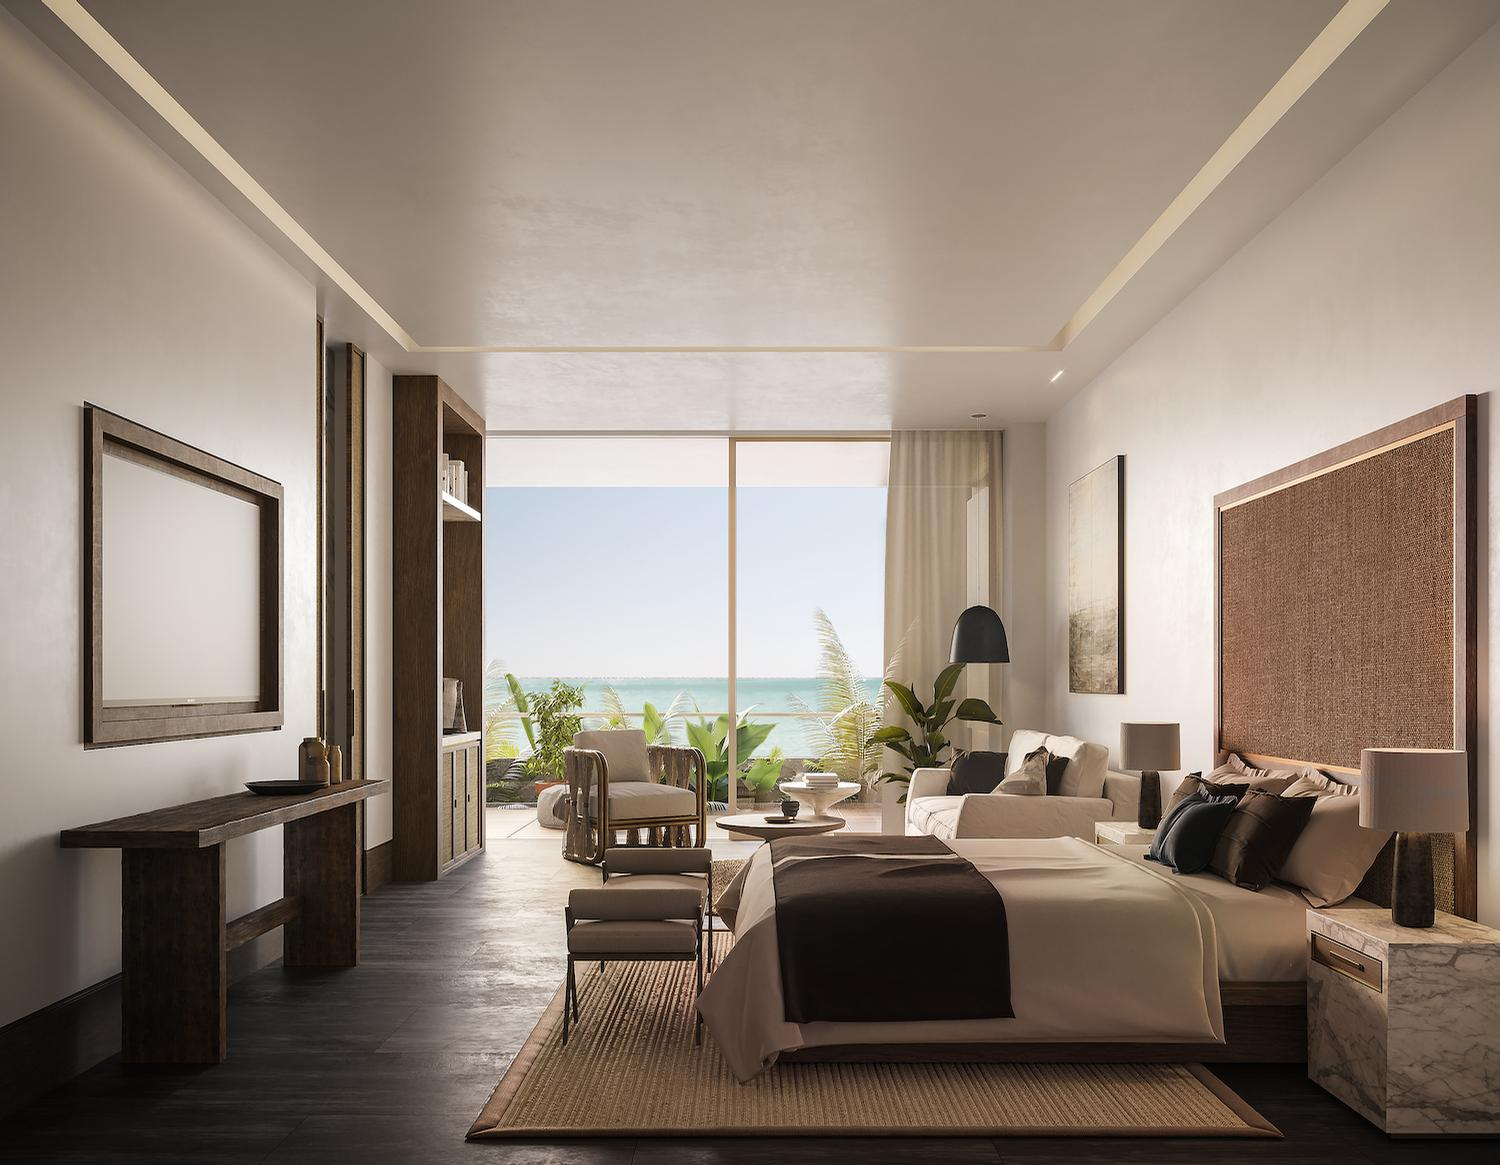 Mexican ceramics, marble, wicker and locally sourced fabrics will bring together the interiors, which are designed to create a calm and relaxed environment for guests